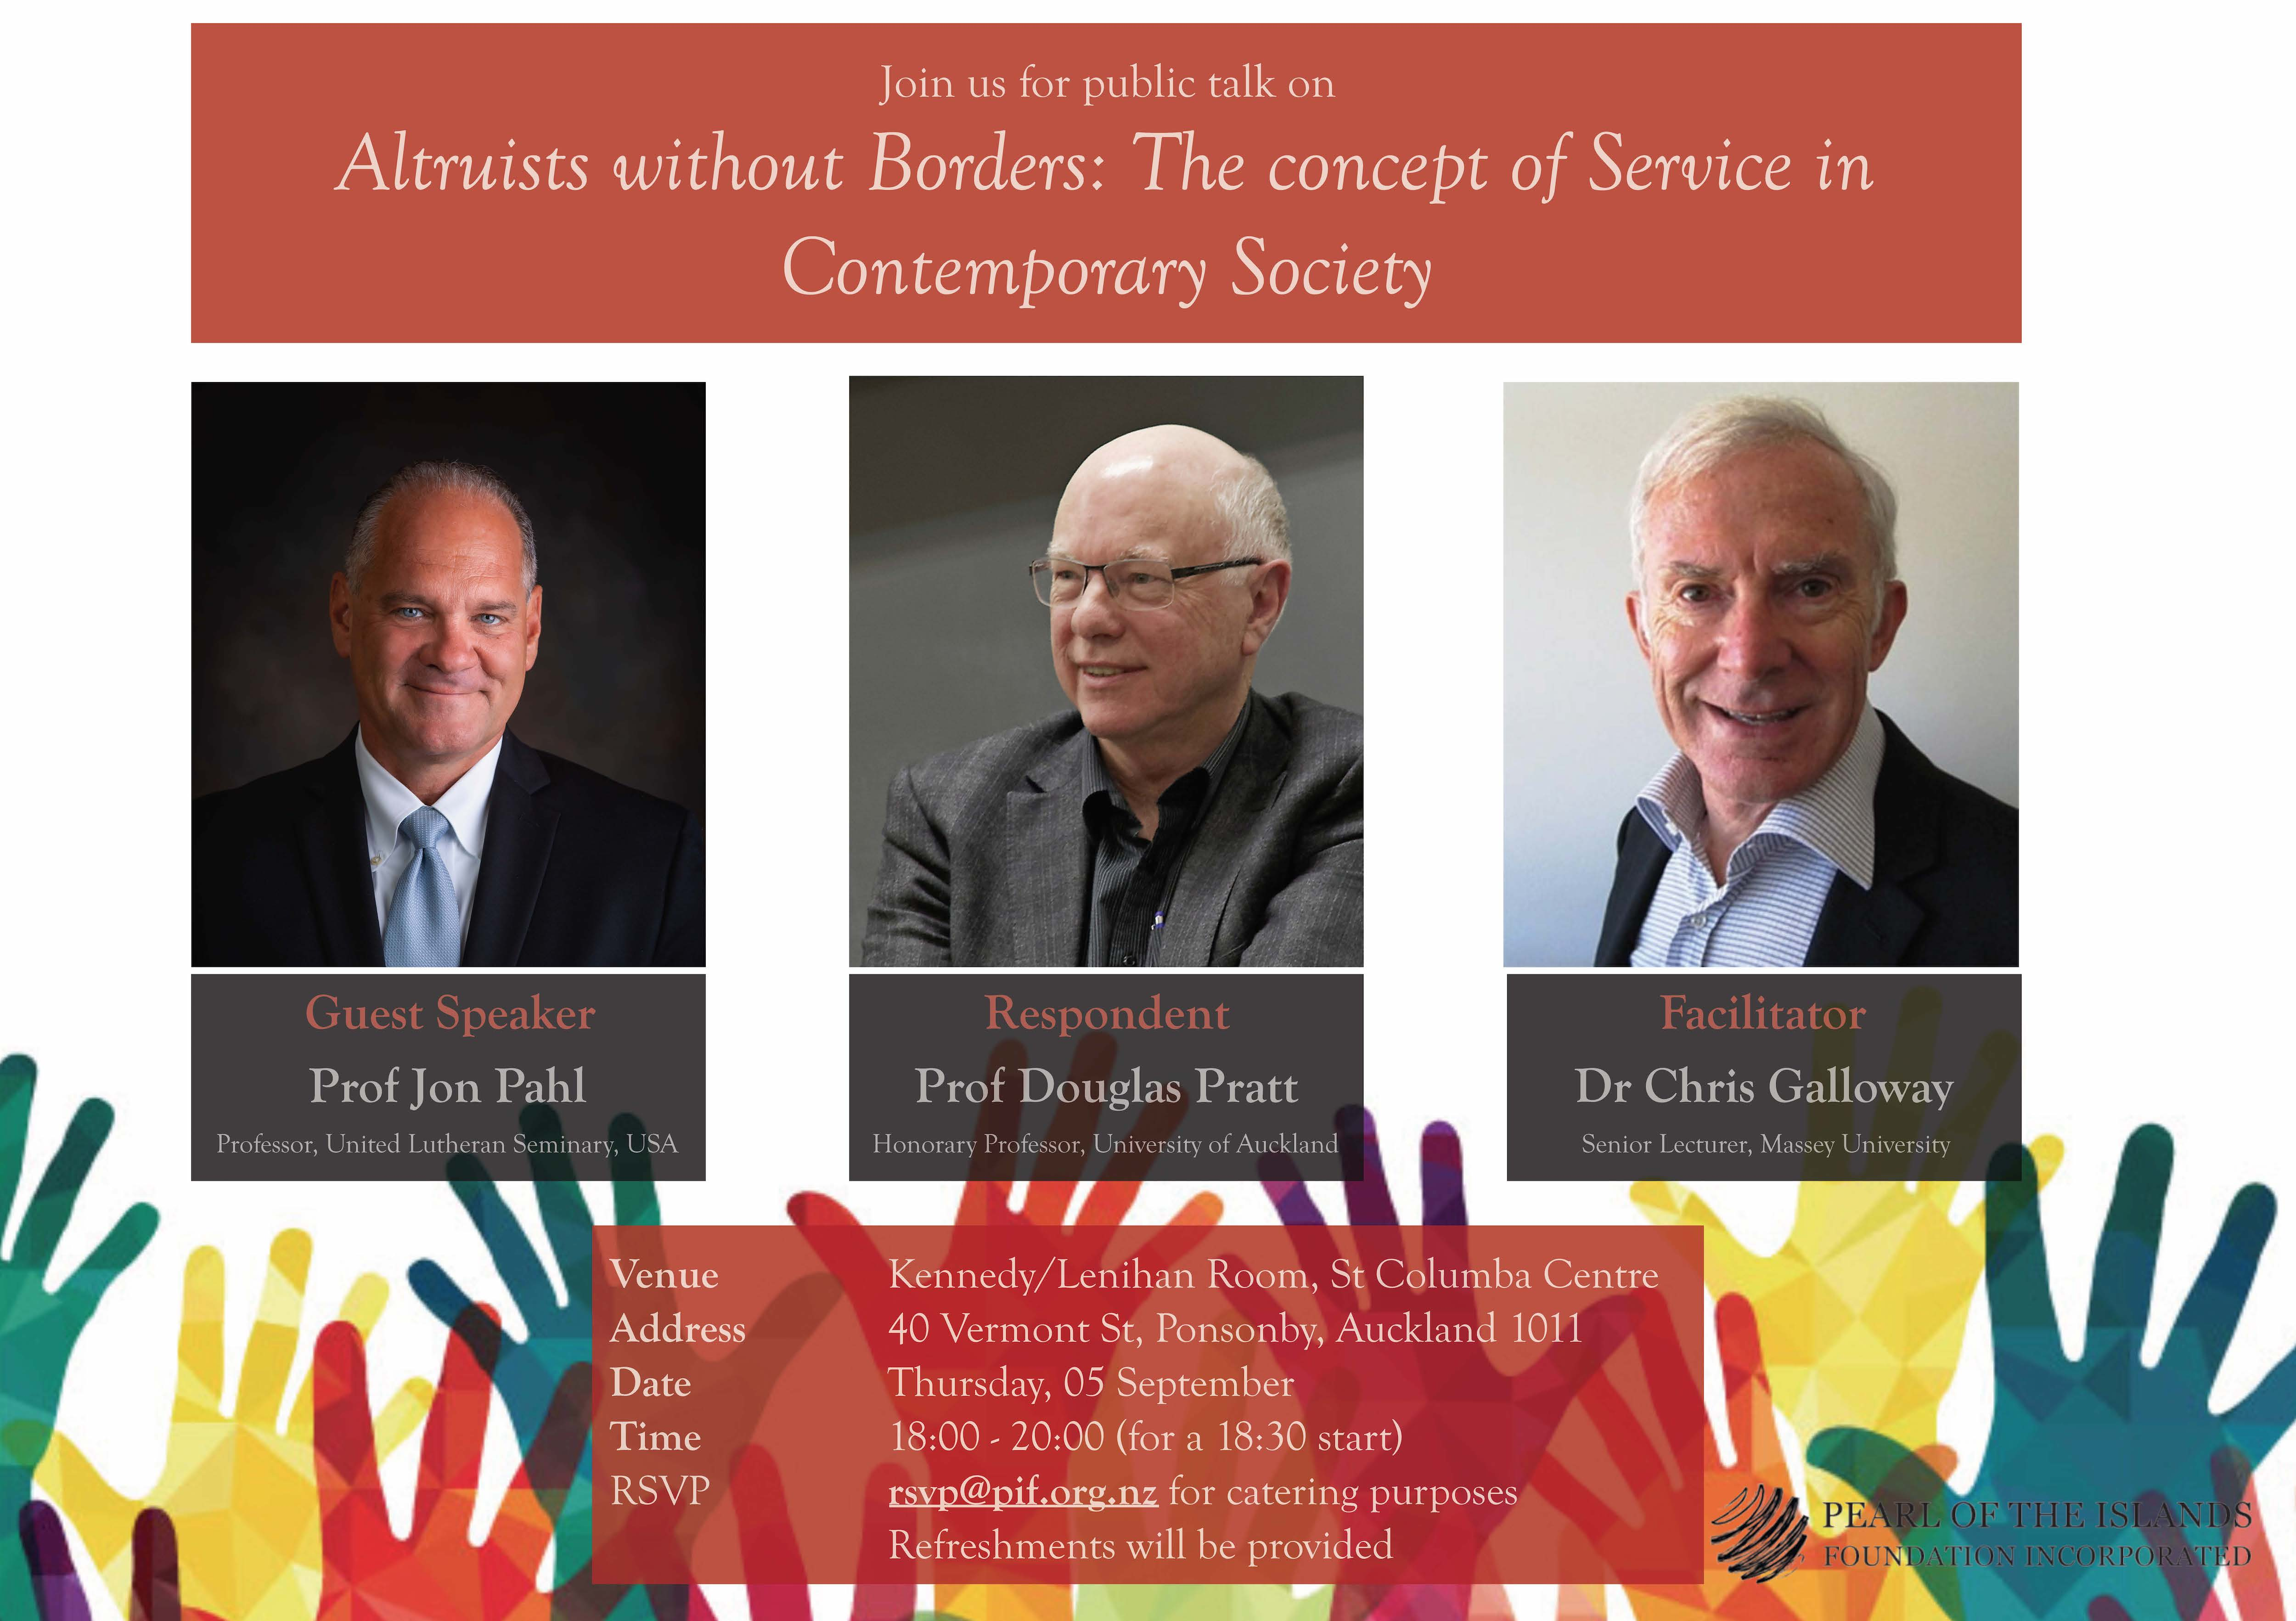 INVITATION: Join us for a talk on 'Altruists without Borders: The concept of Service in Contemporary Society'